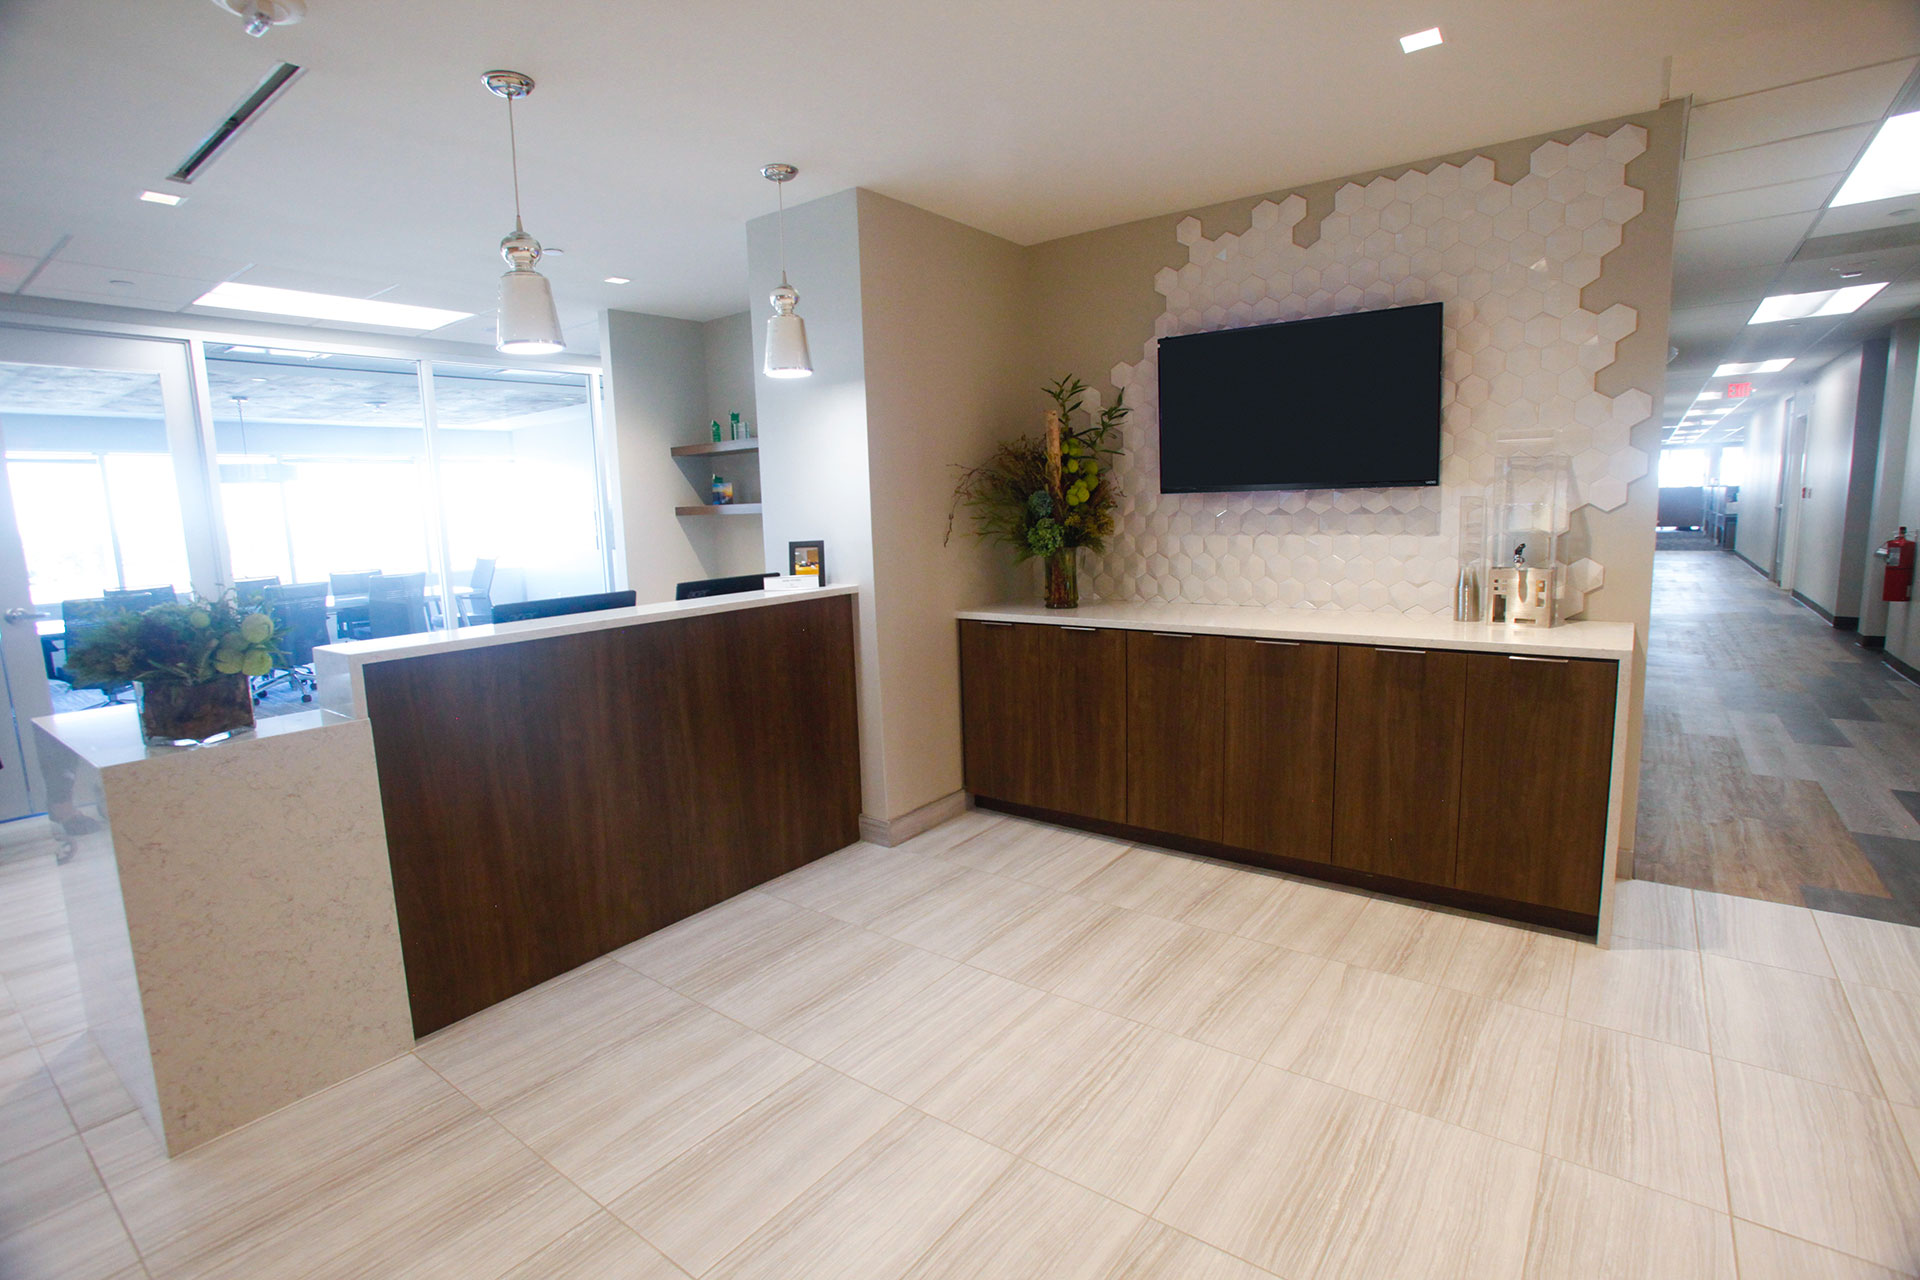 Reception desk with quartz tops and panels, and recessed plastic laminate panel. Also plastic laminate cabinets with quartz countertop and end panel.